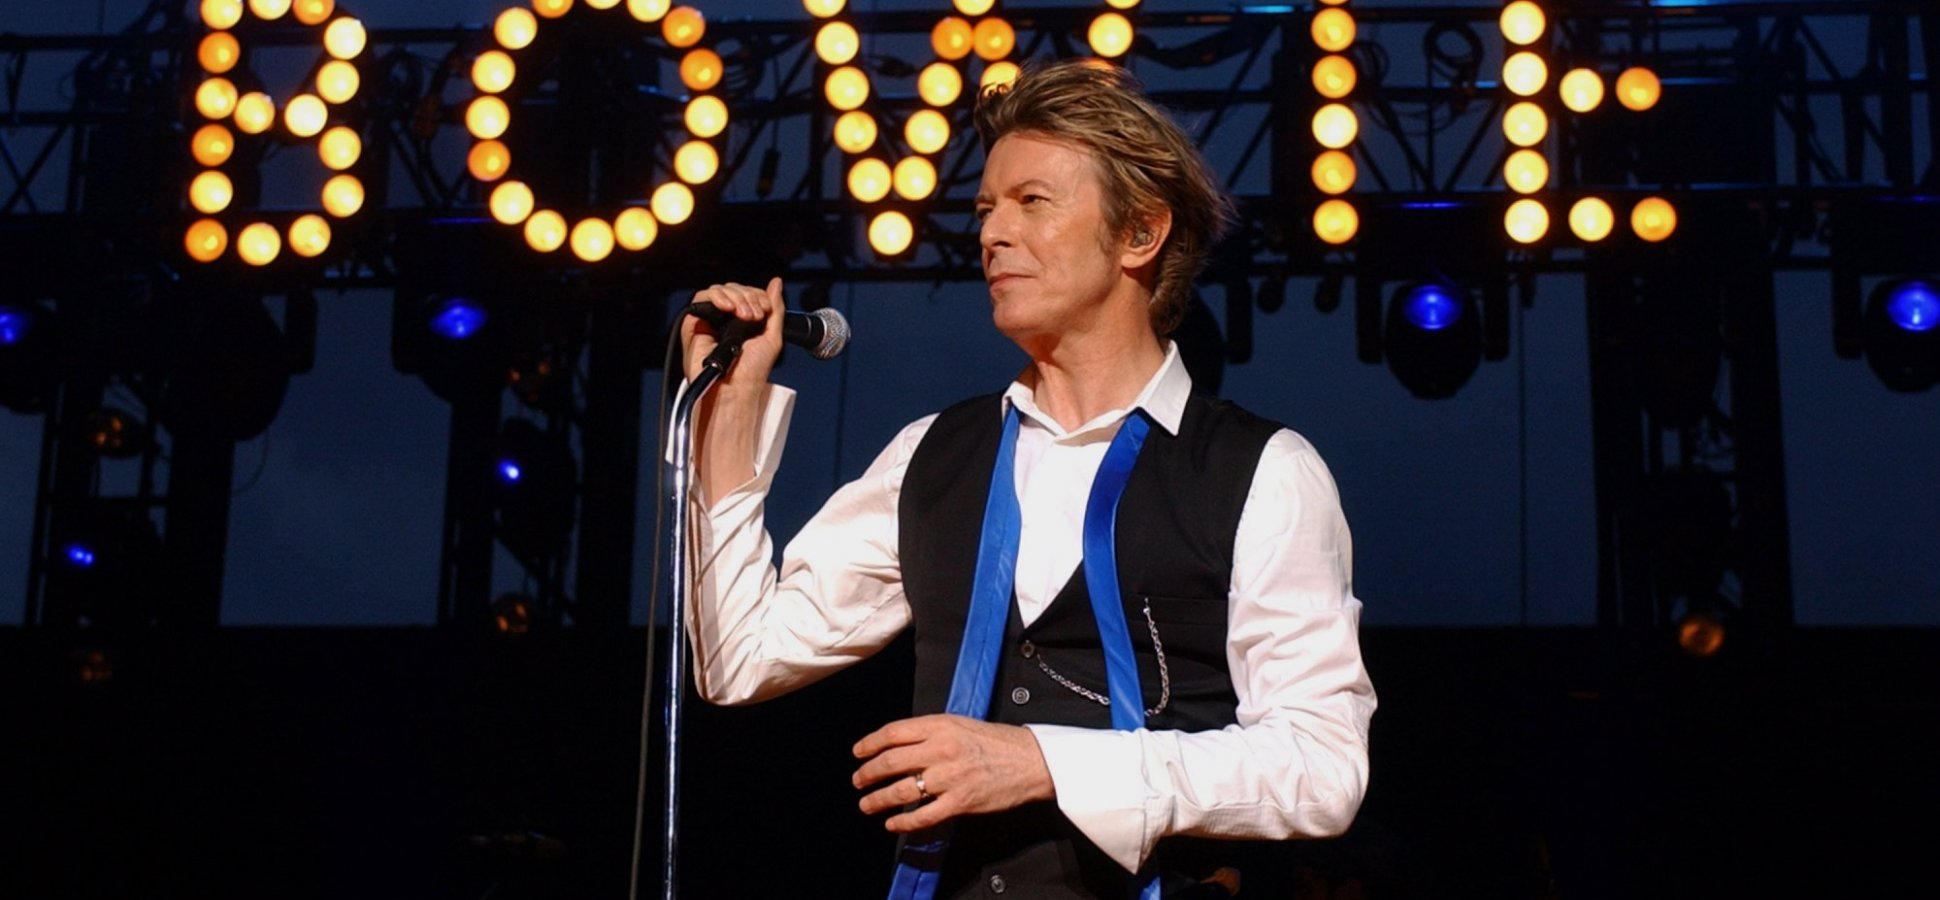 The Secret Sauce That Transformed David Jones into David Bowie